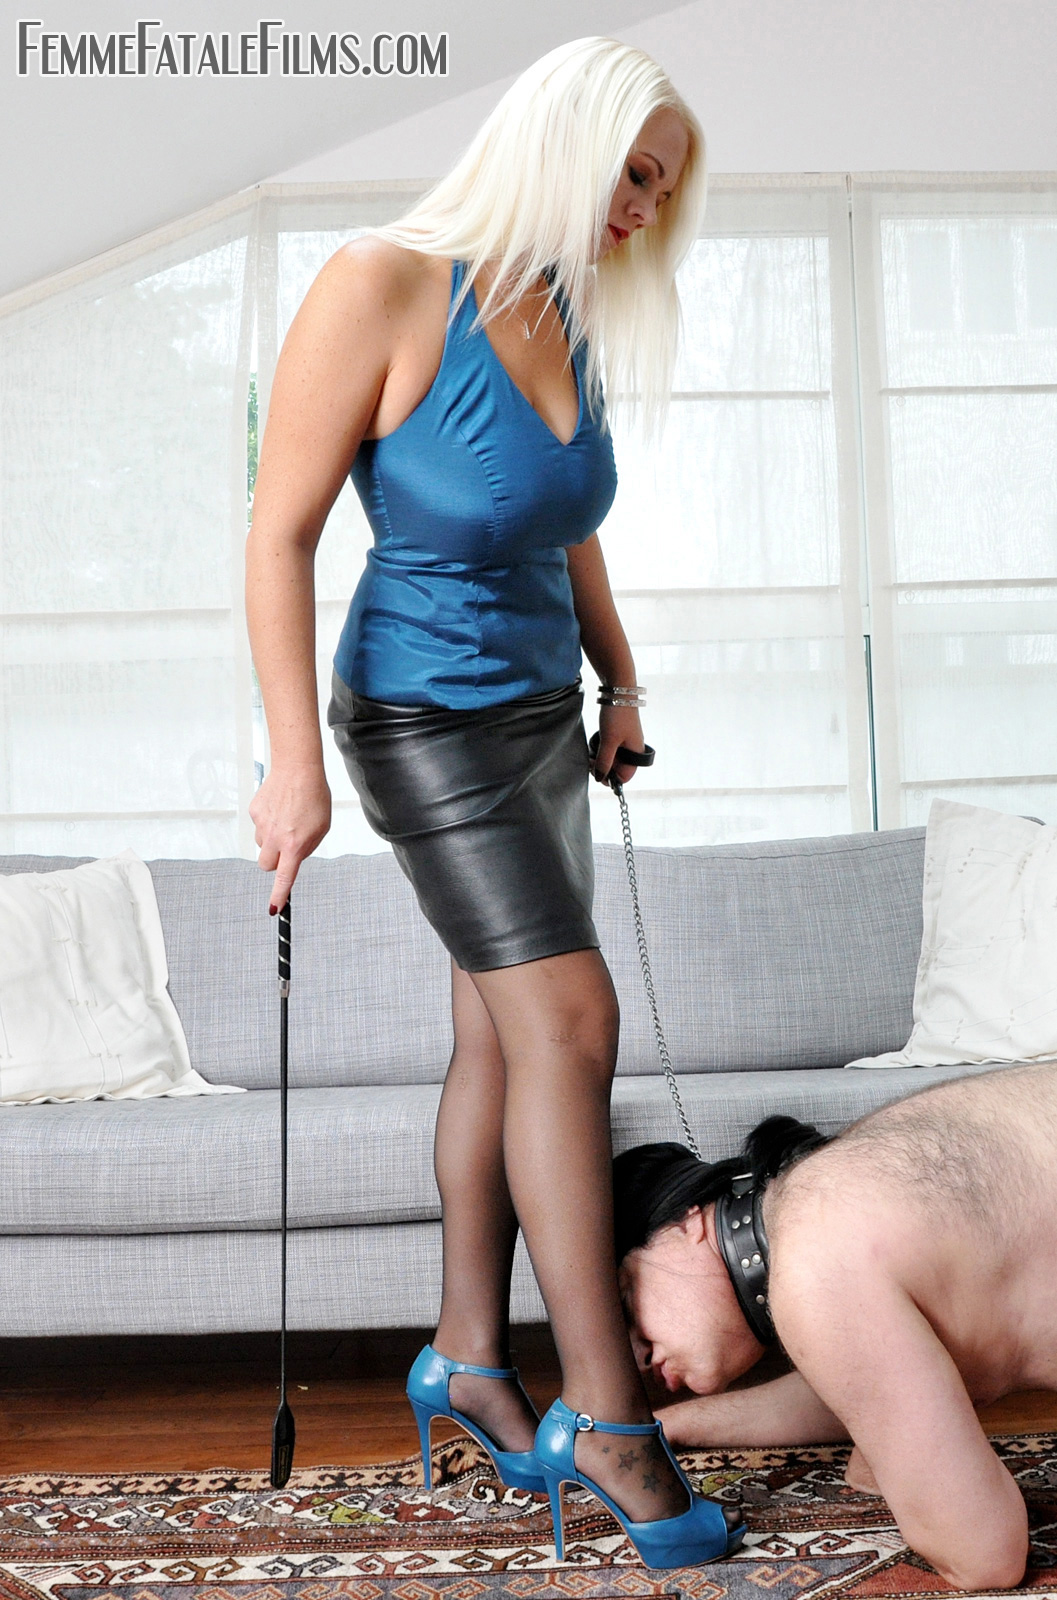 GODDESS HEATHER DIVINE TRAINS HER PUPPY SLAVE